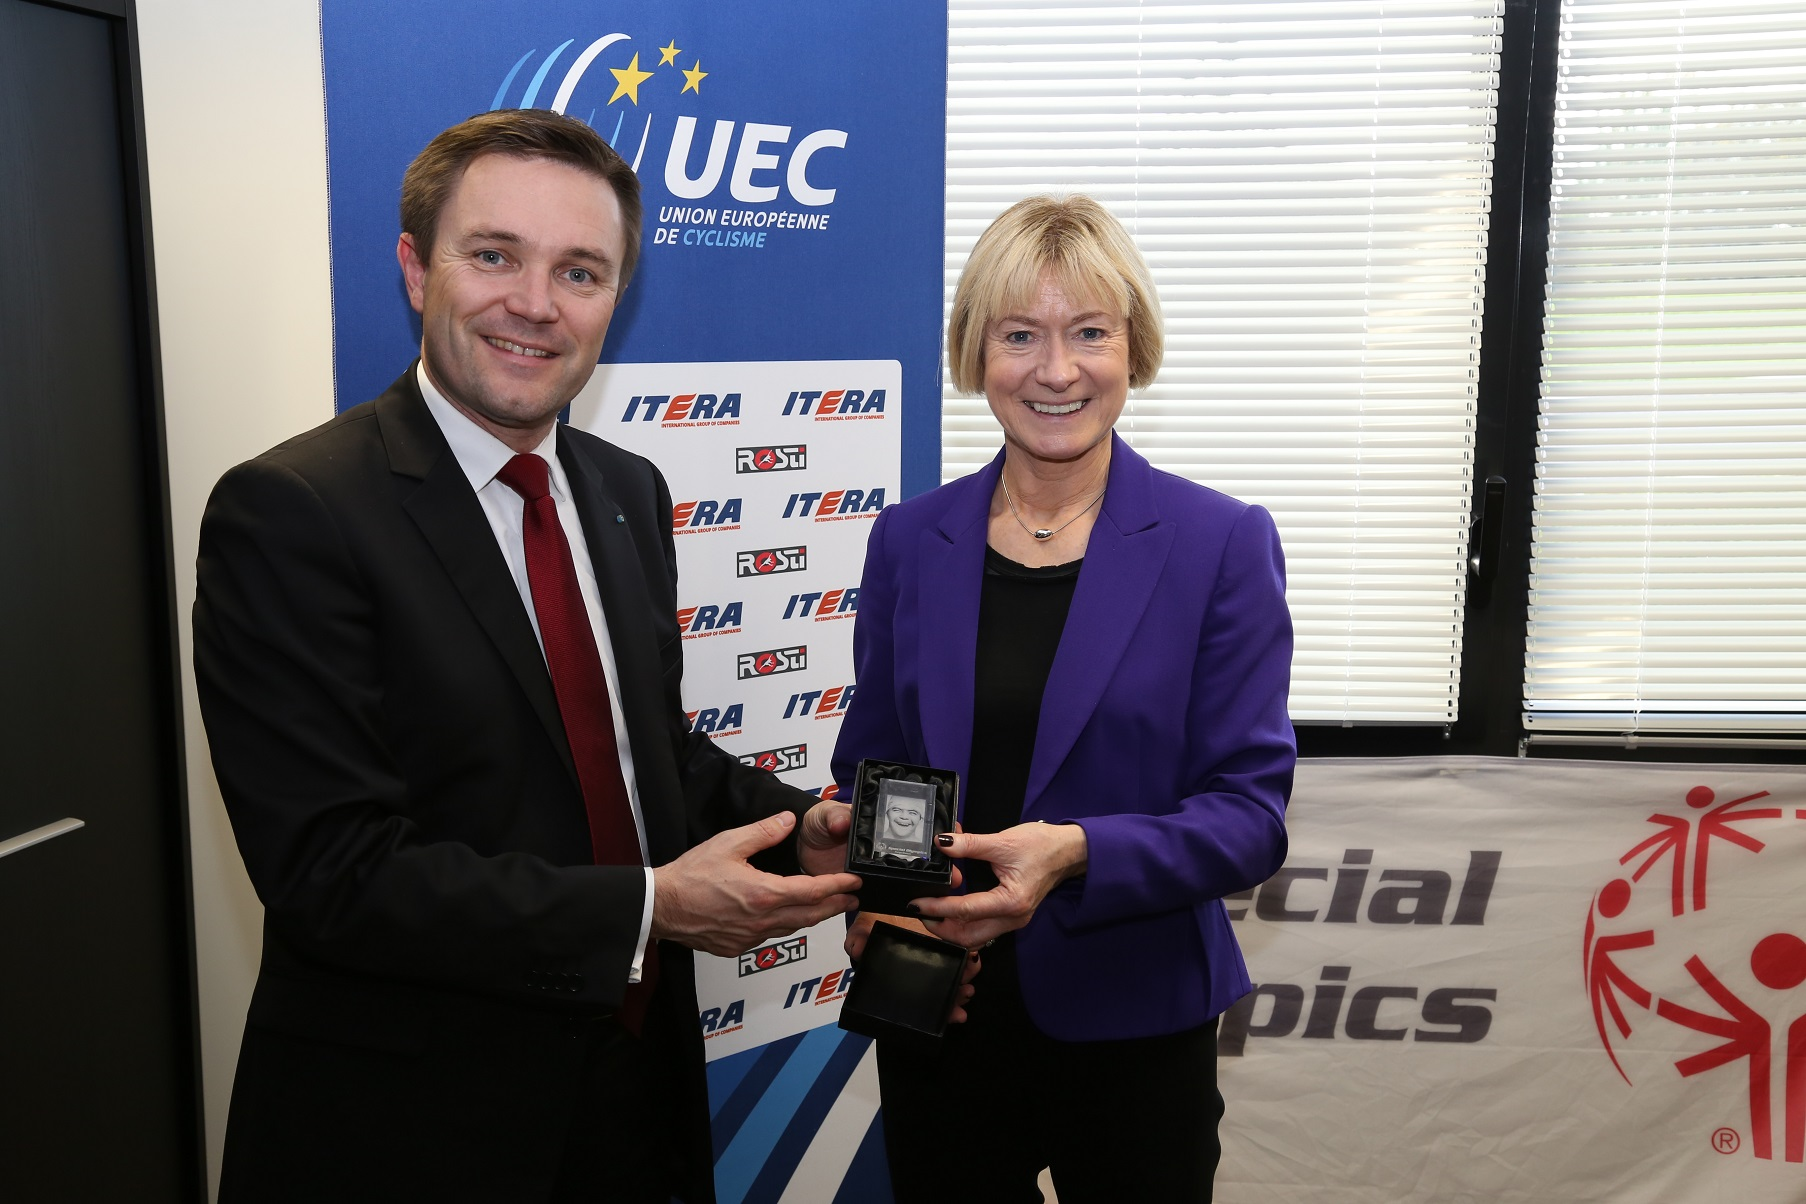 David Lappartient (left), President of the UEC, and Mary Davis (right), regional President of SOEE, commemorate the agreement ©UEC